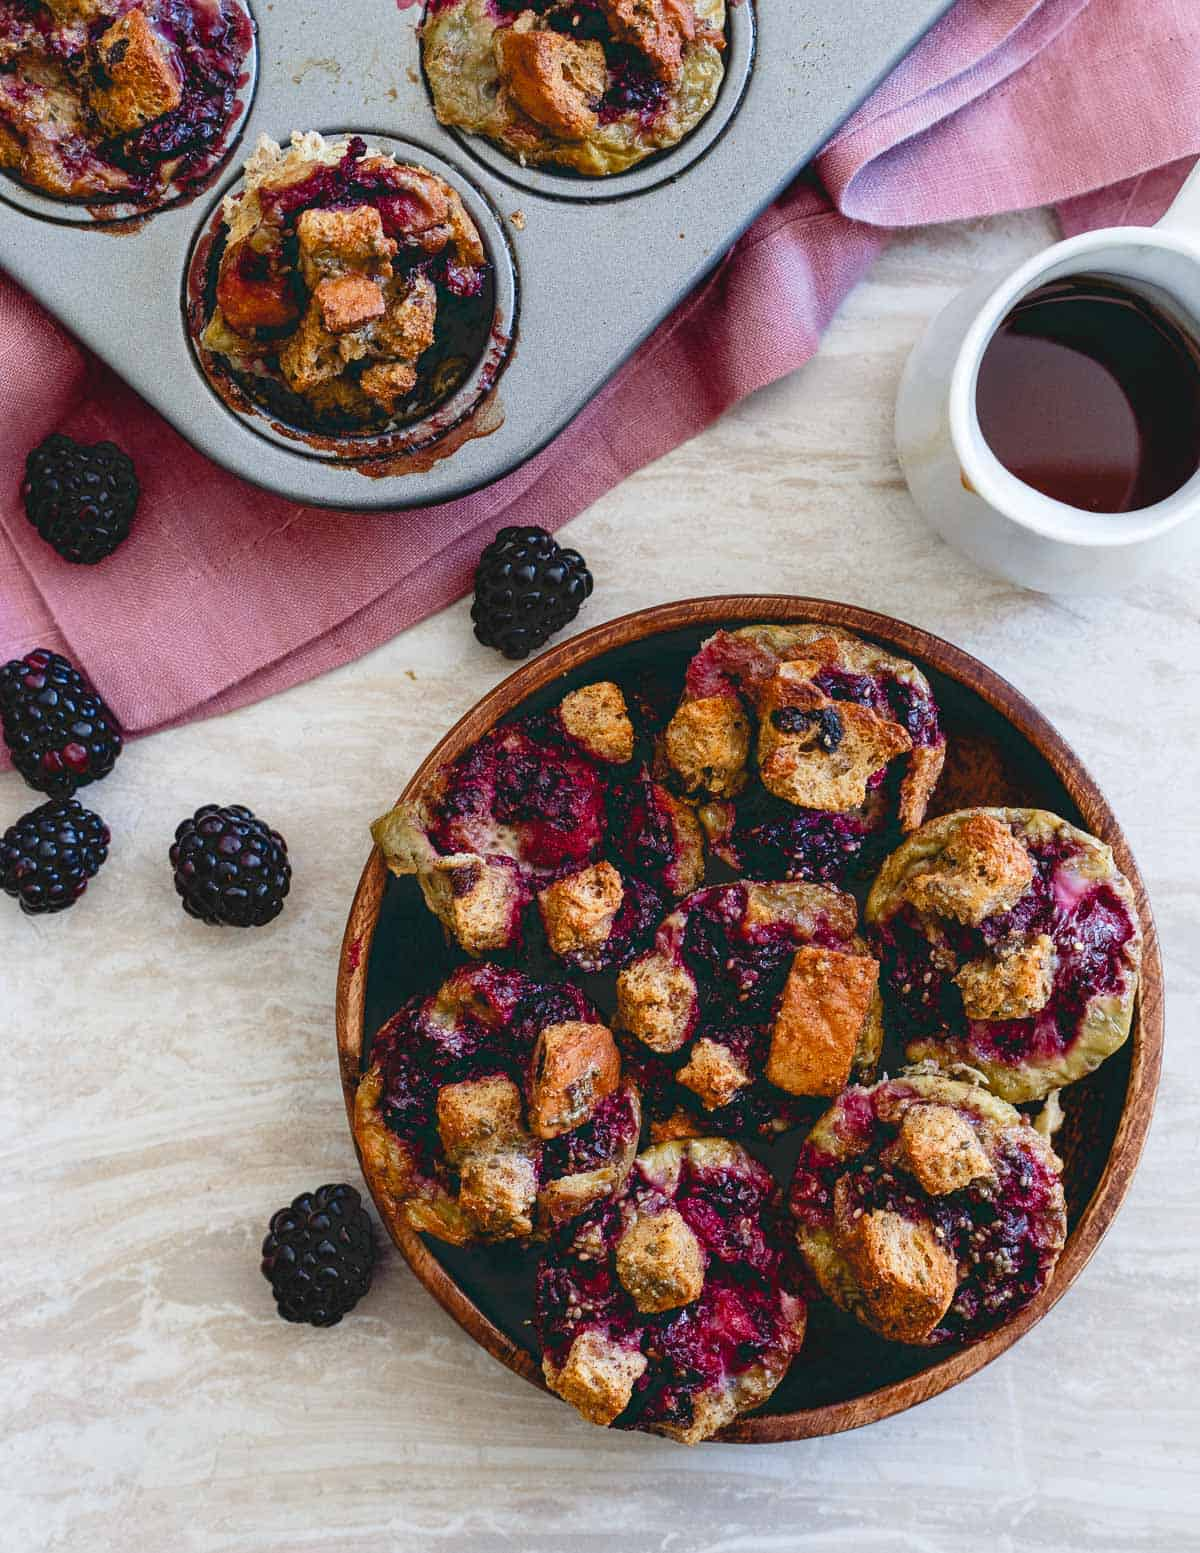 All the decadence and deliciousness of French toast in bite size form! Take these blackberry ginger French toast bites with you for an easy on the go breakfast!